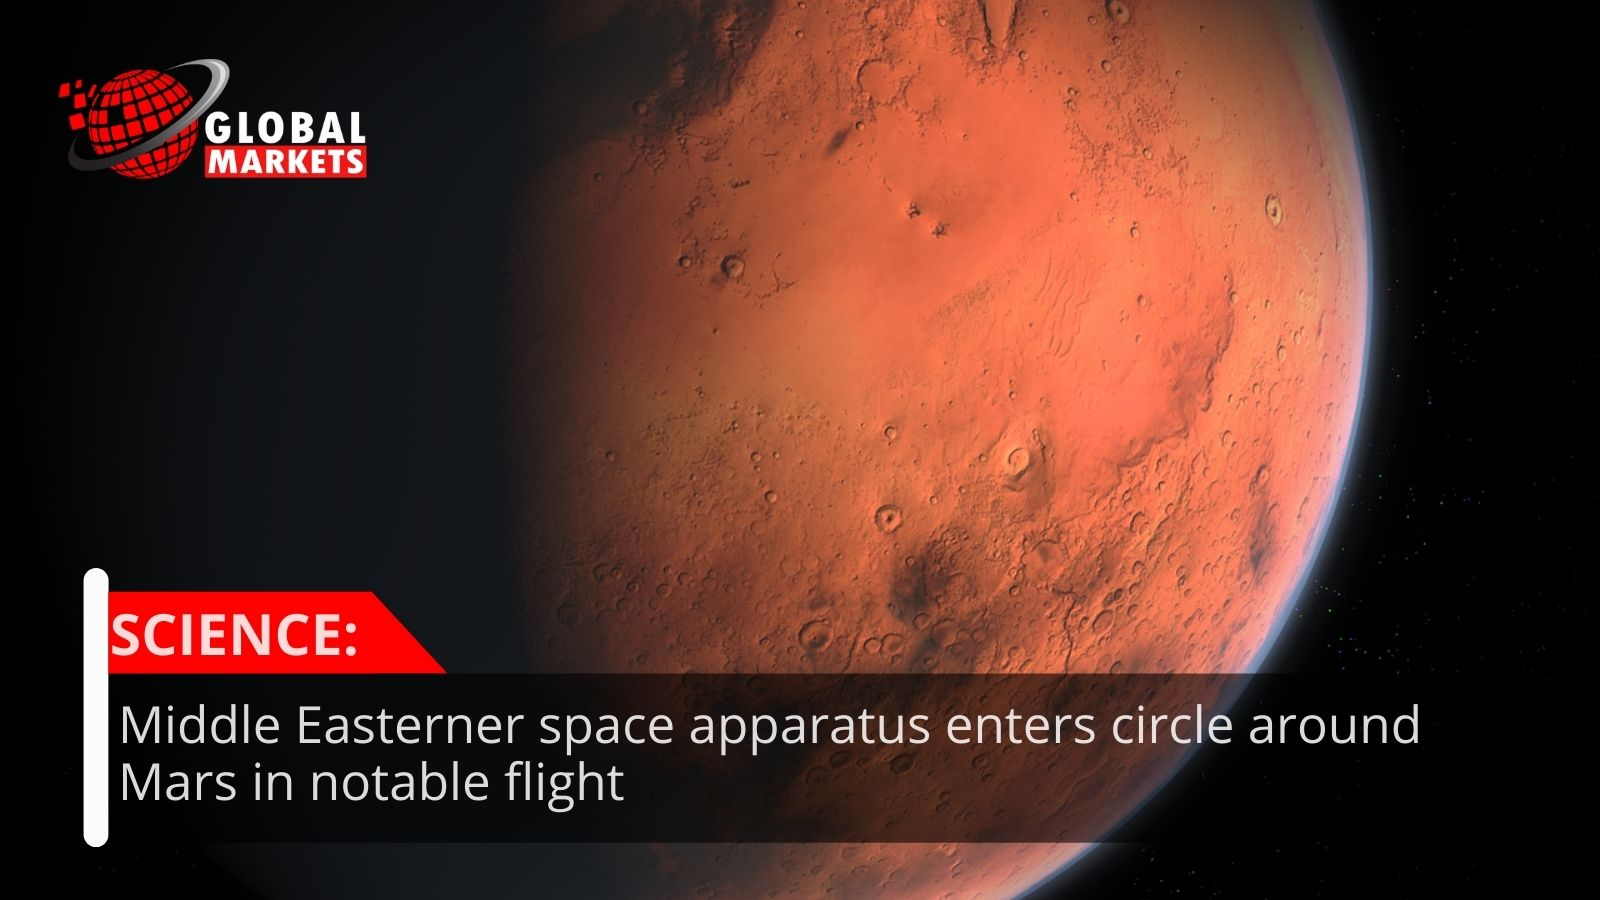 Middle Easterner space apparatus enters circle around Mars in notable flight